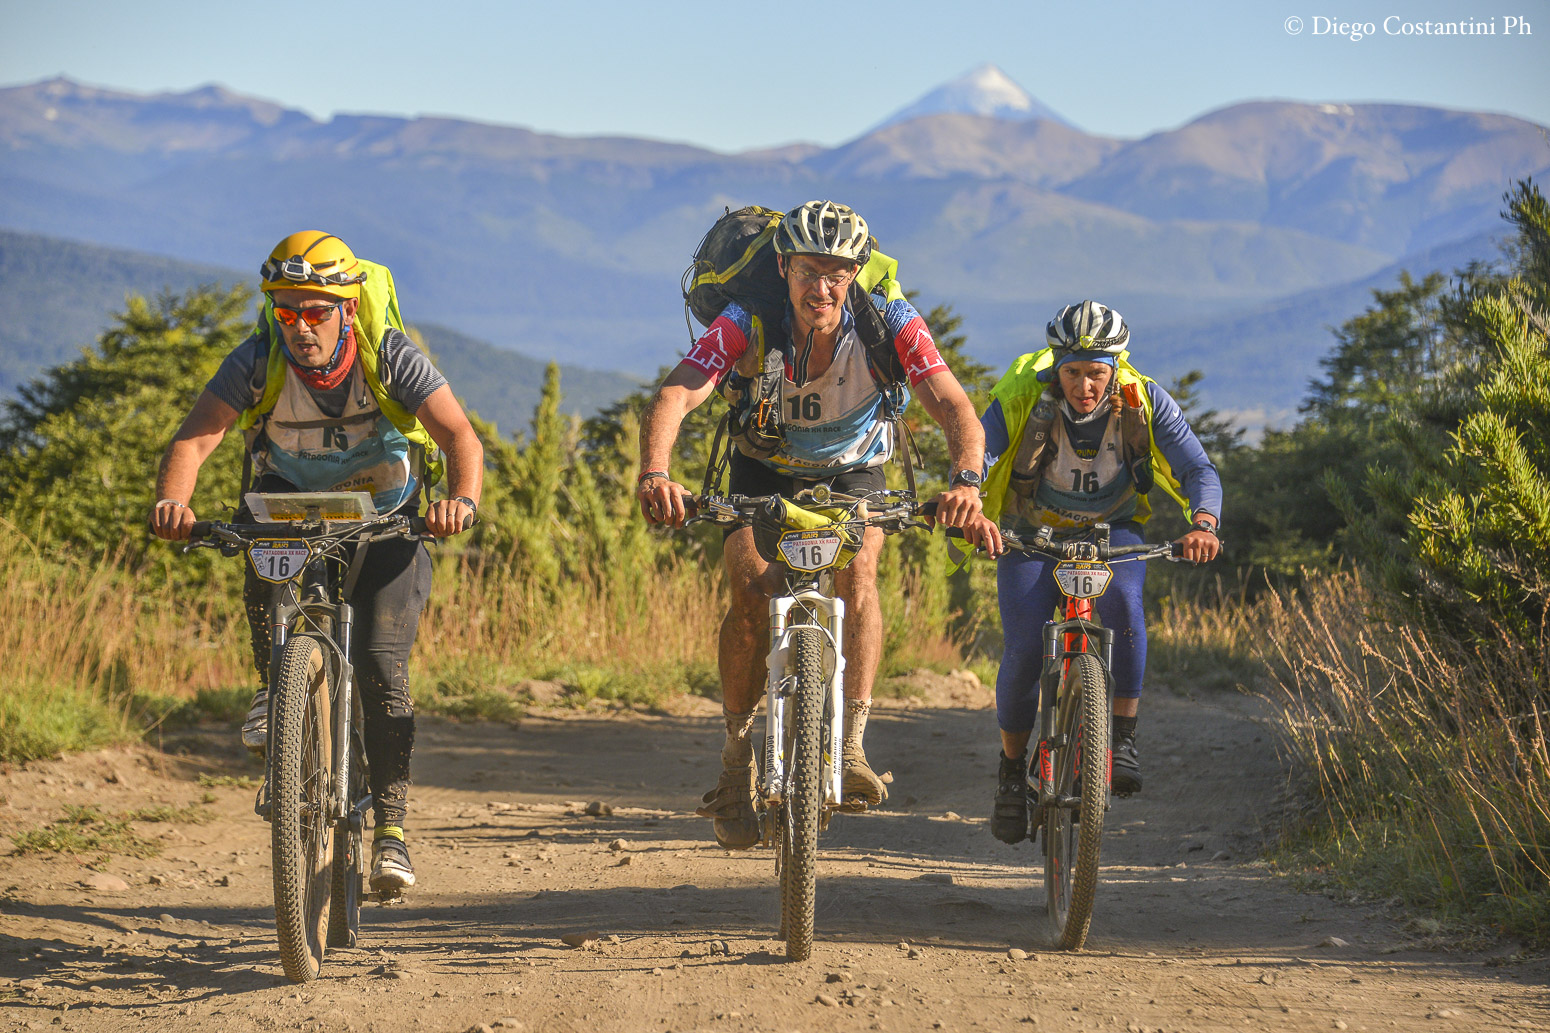 Riding the dusty trails at Patagonia Raid. Photo Diego Costantini.